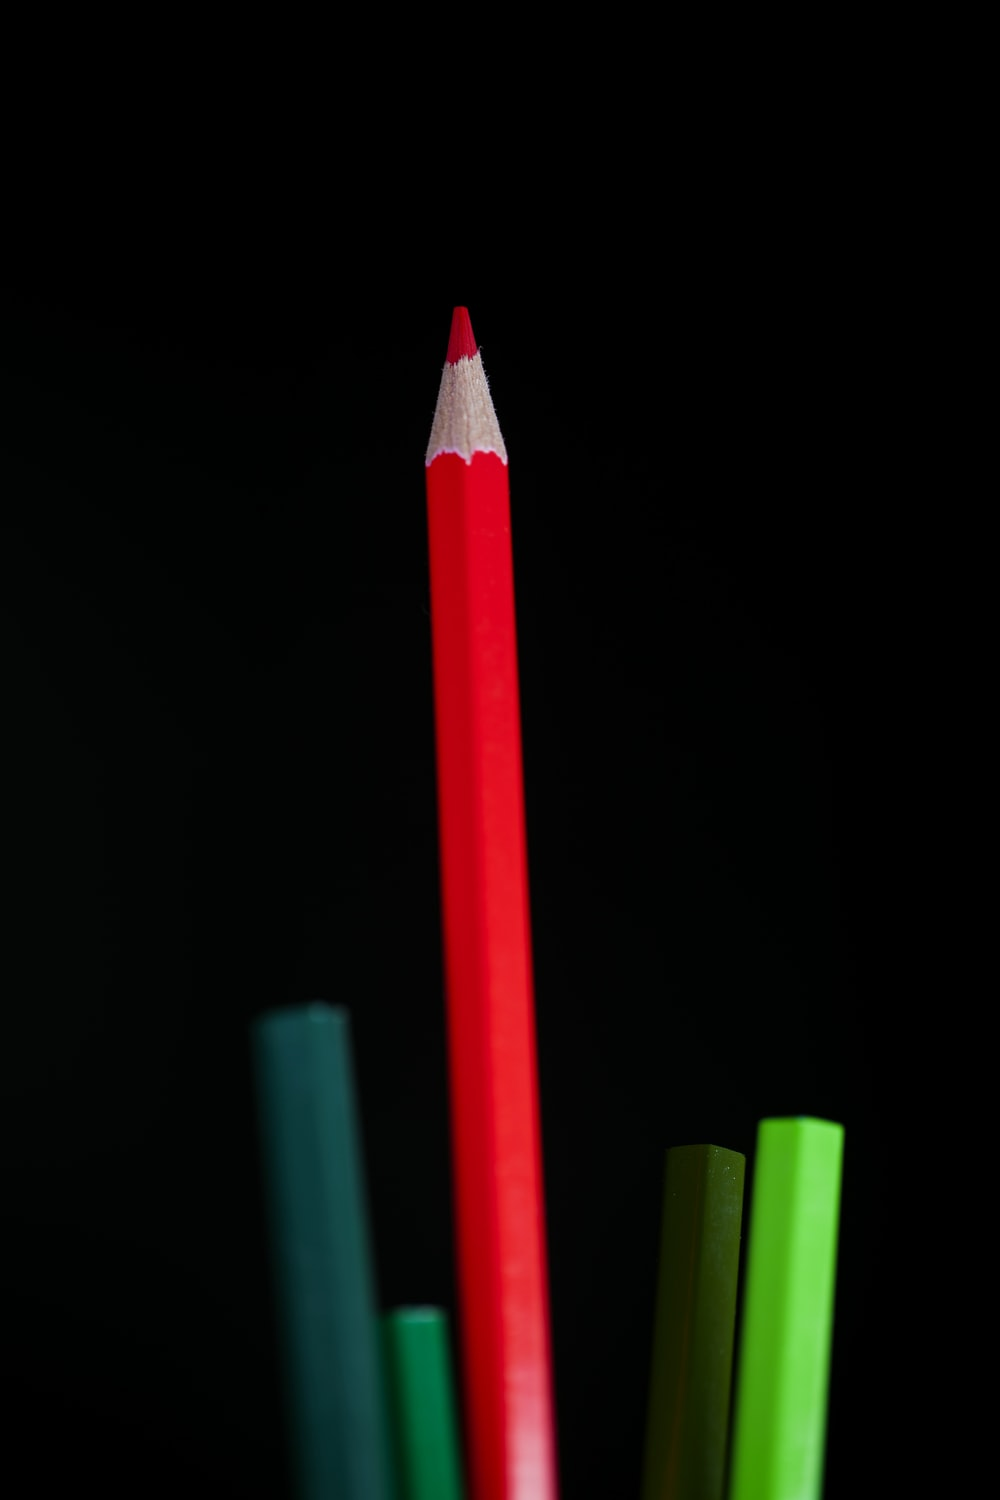 red color pencil on black background